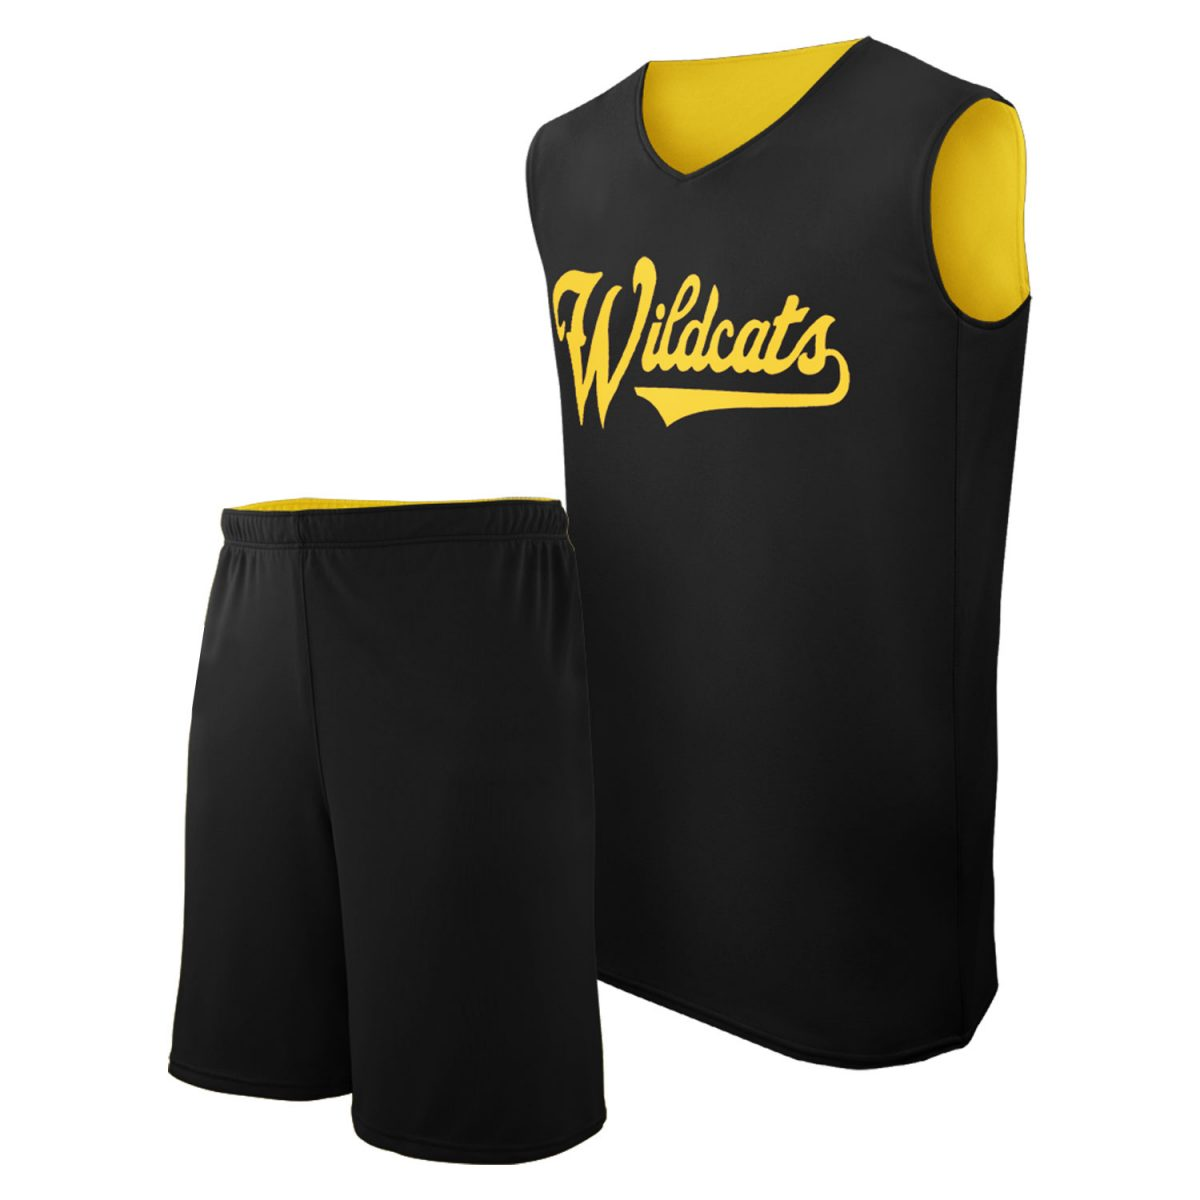 Boys Basketball Uniforms Manufacturers in Bangladesh